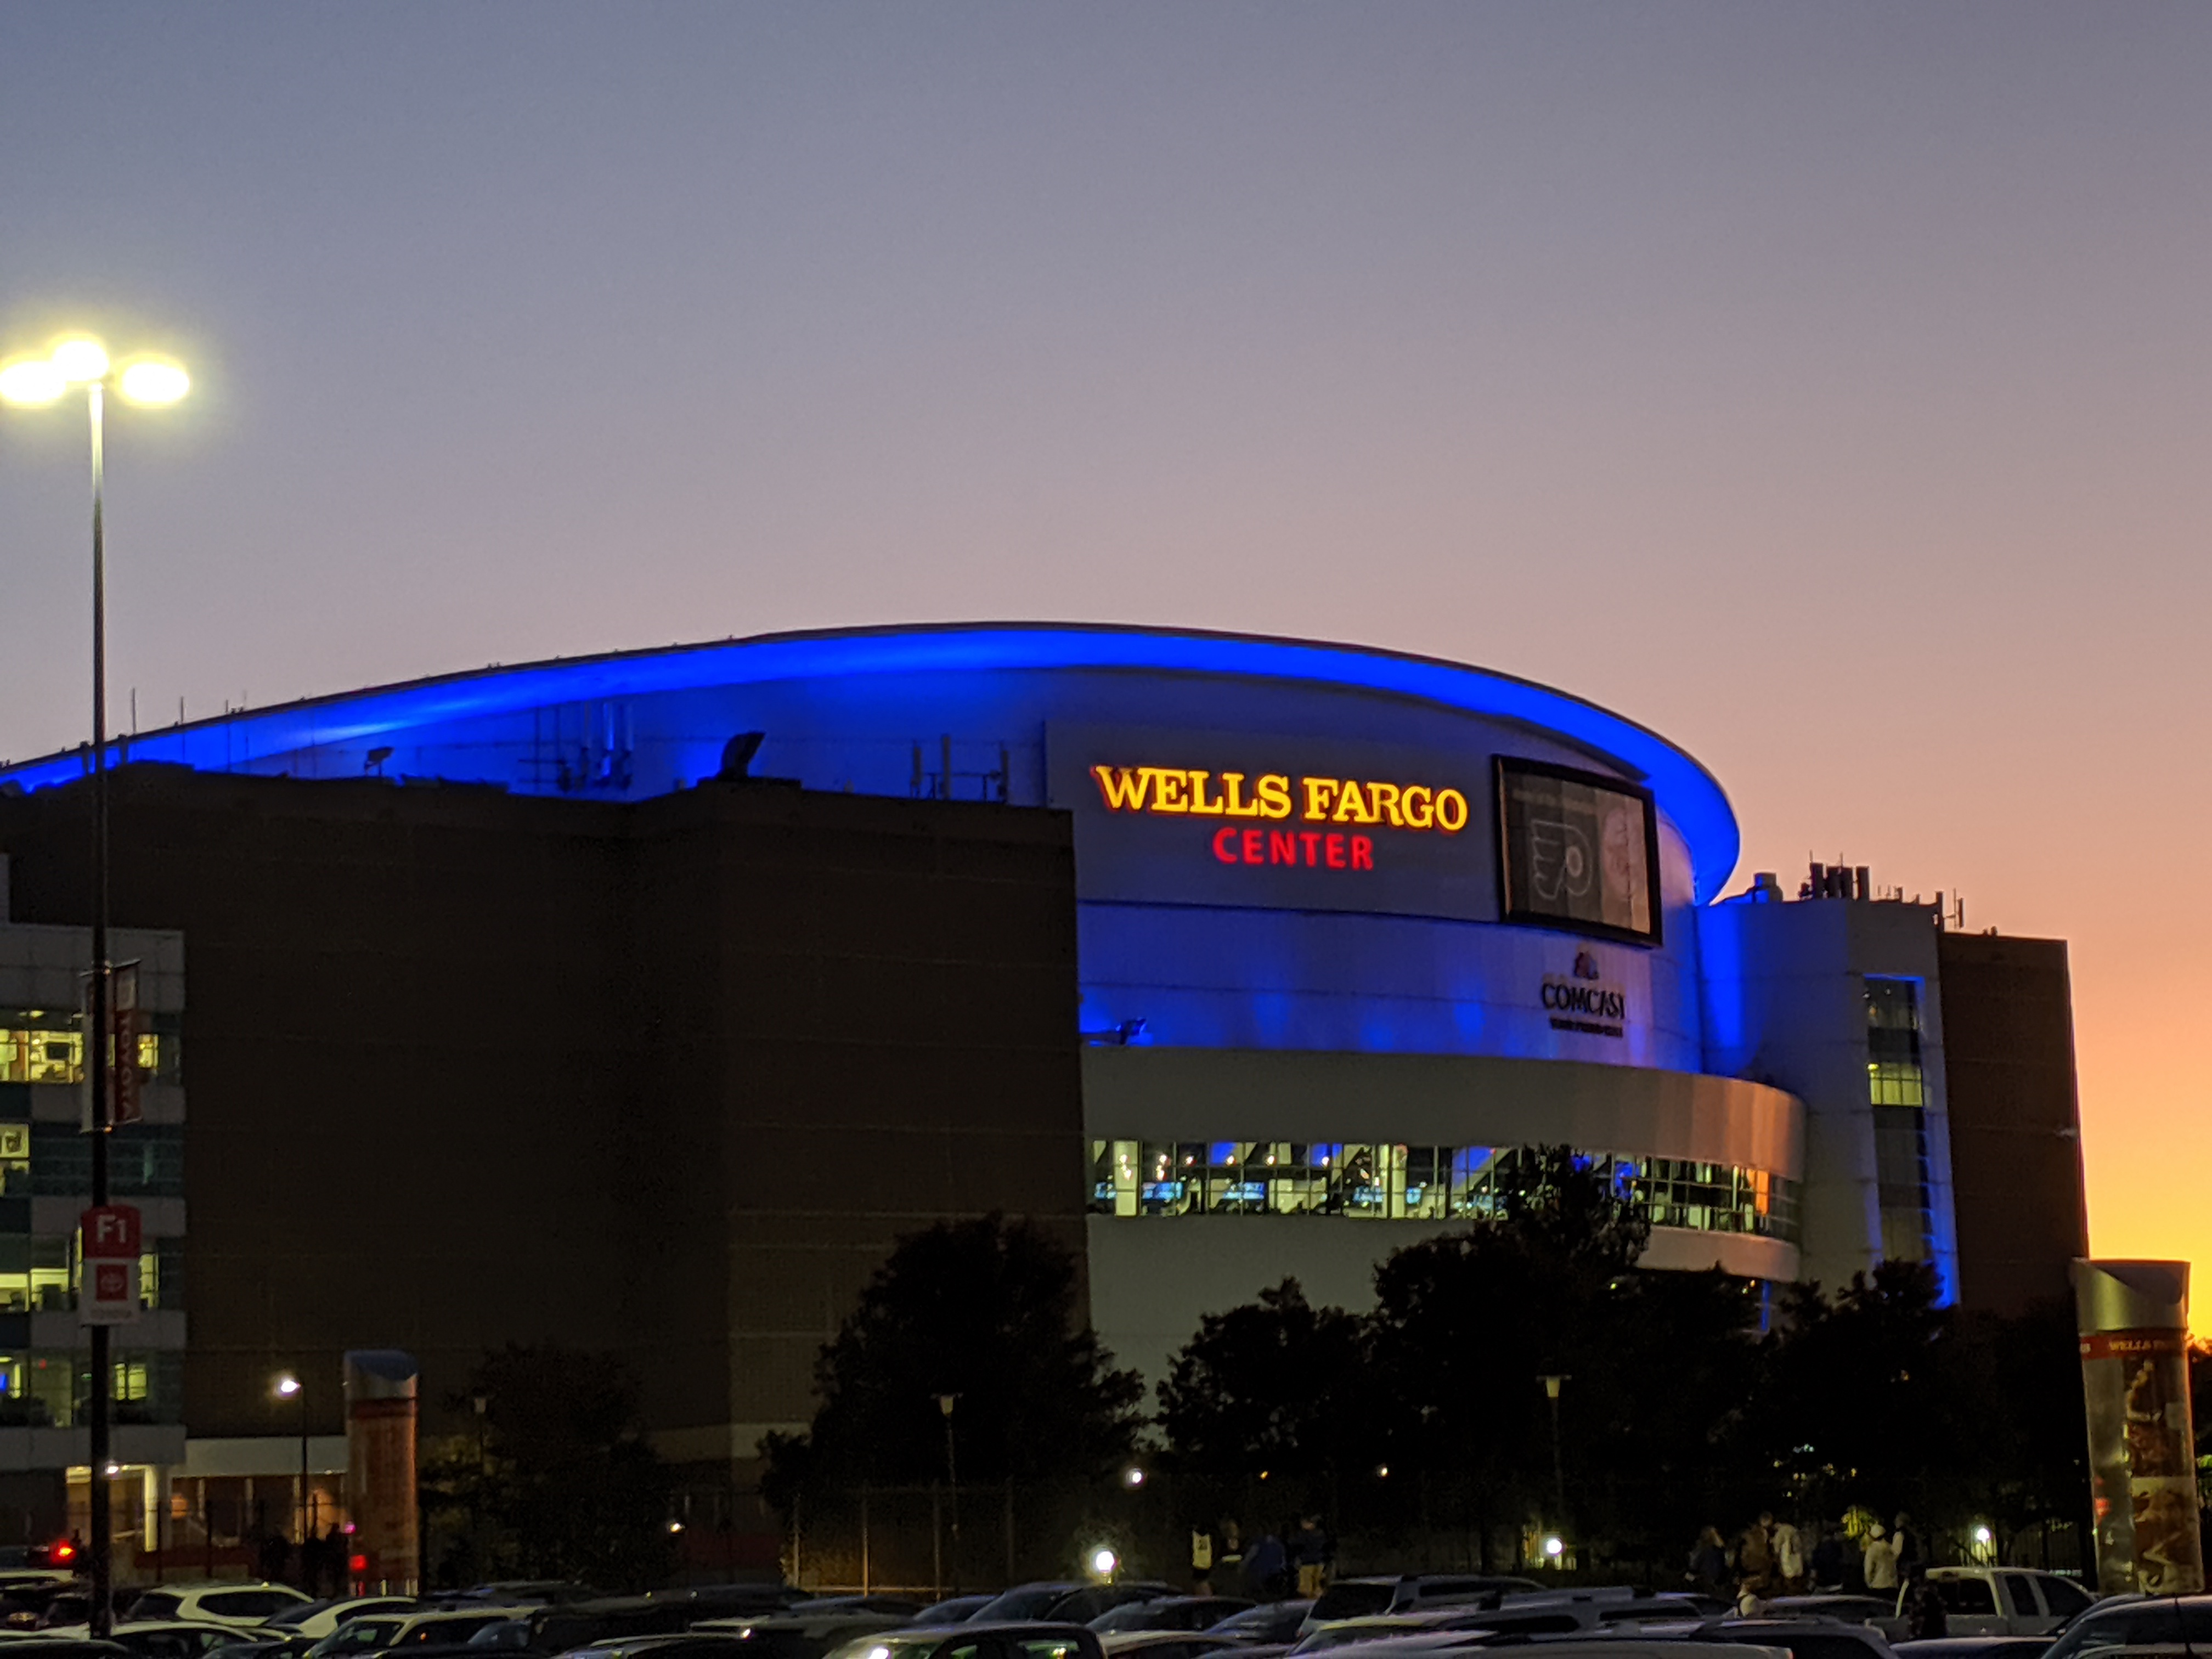 Wells Fargo Center Philadelphia 76ers Stadium Journey